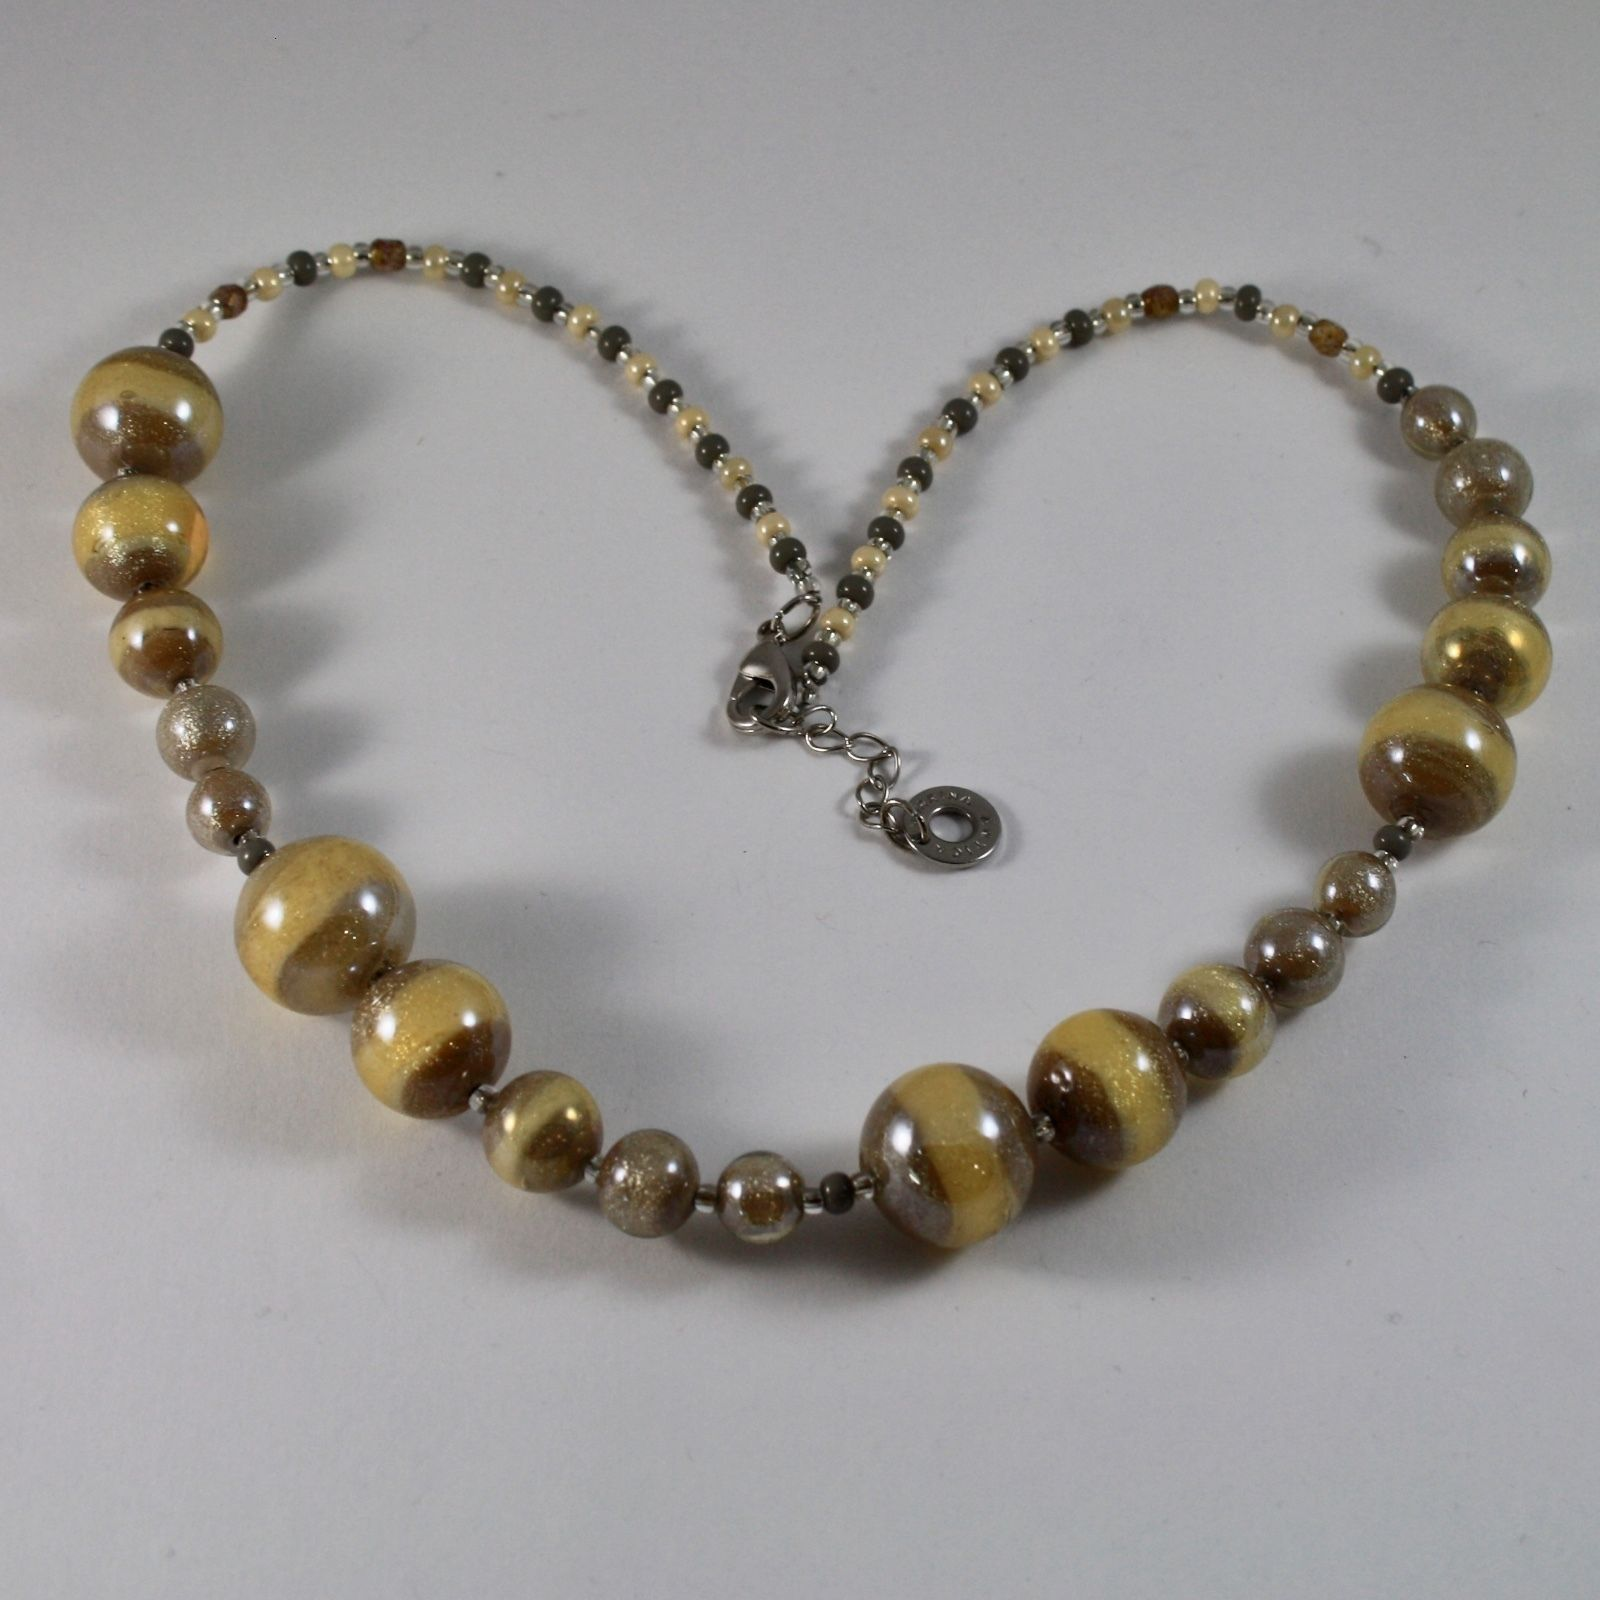 NECKLACE ANTICA MURRINA VENEZIA MURANO GLASS SPHERES YELLOW BROWN, 45 CM